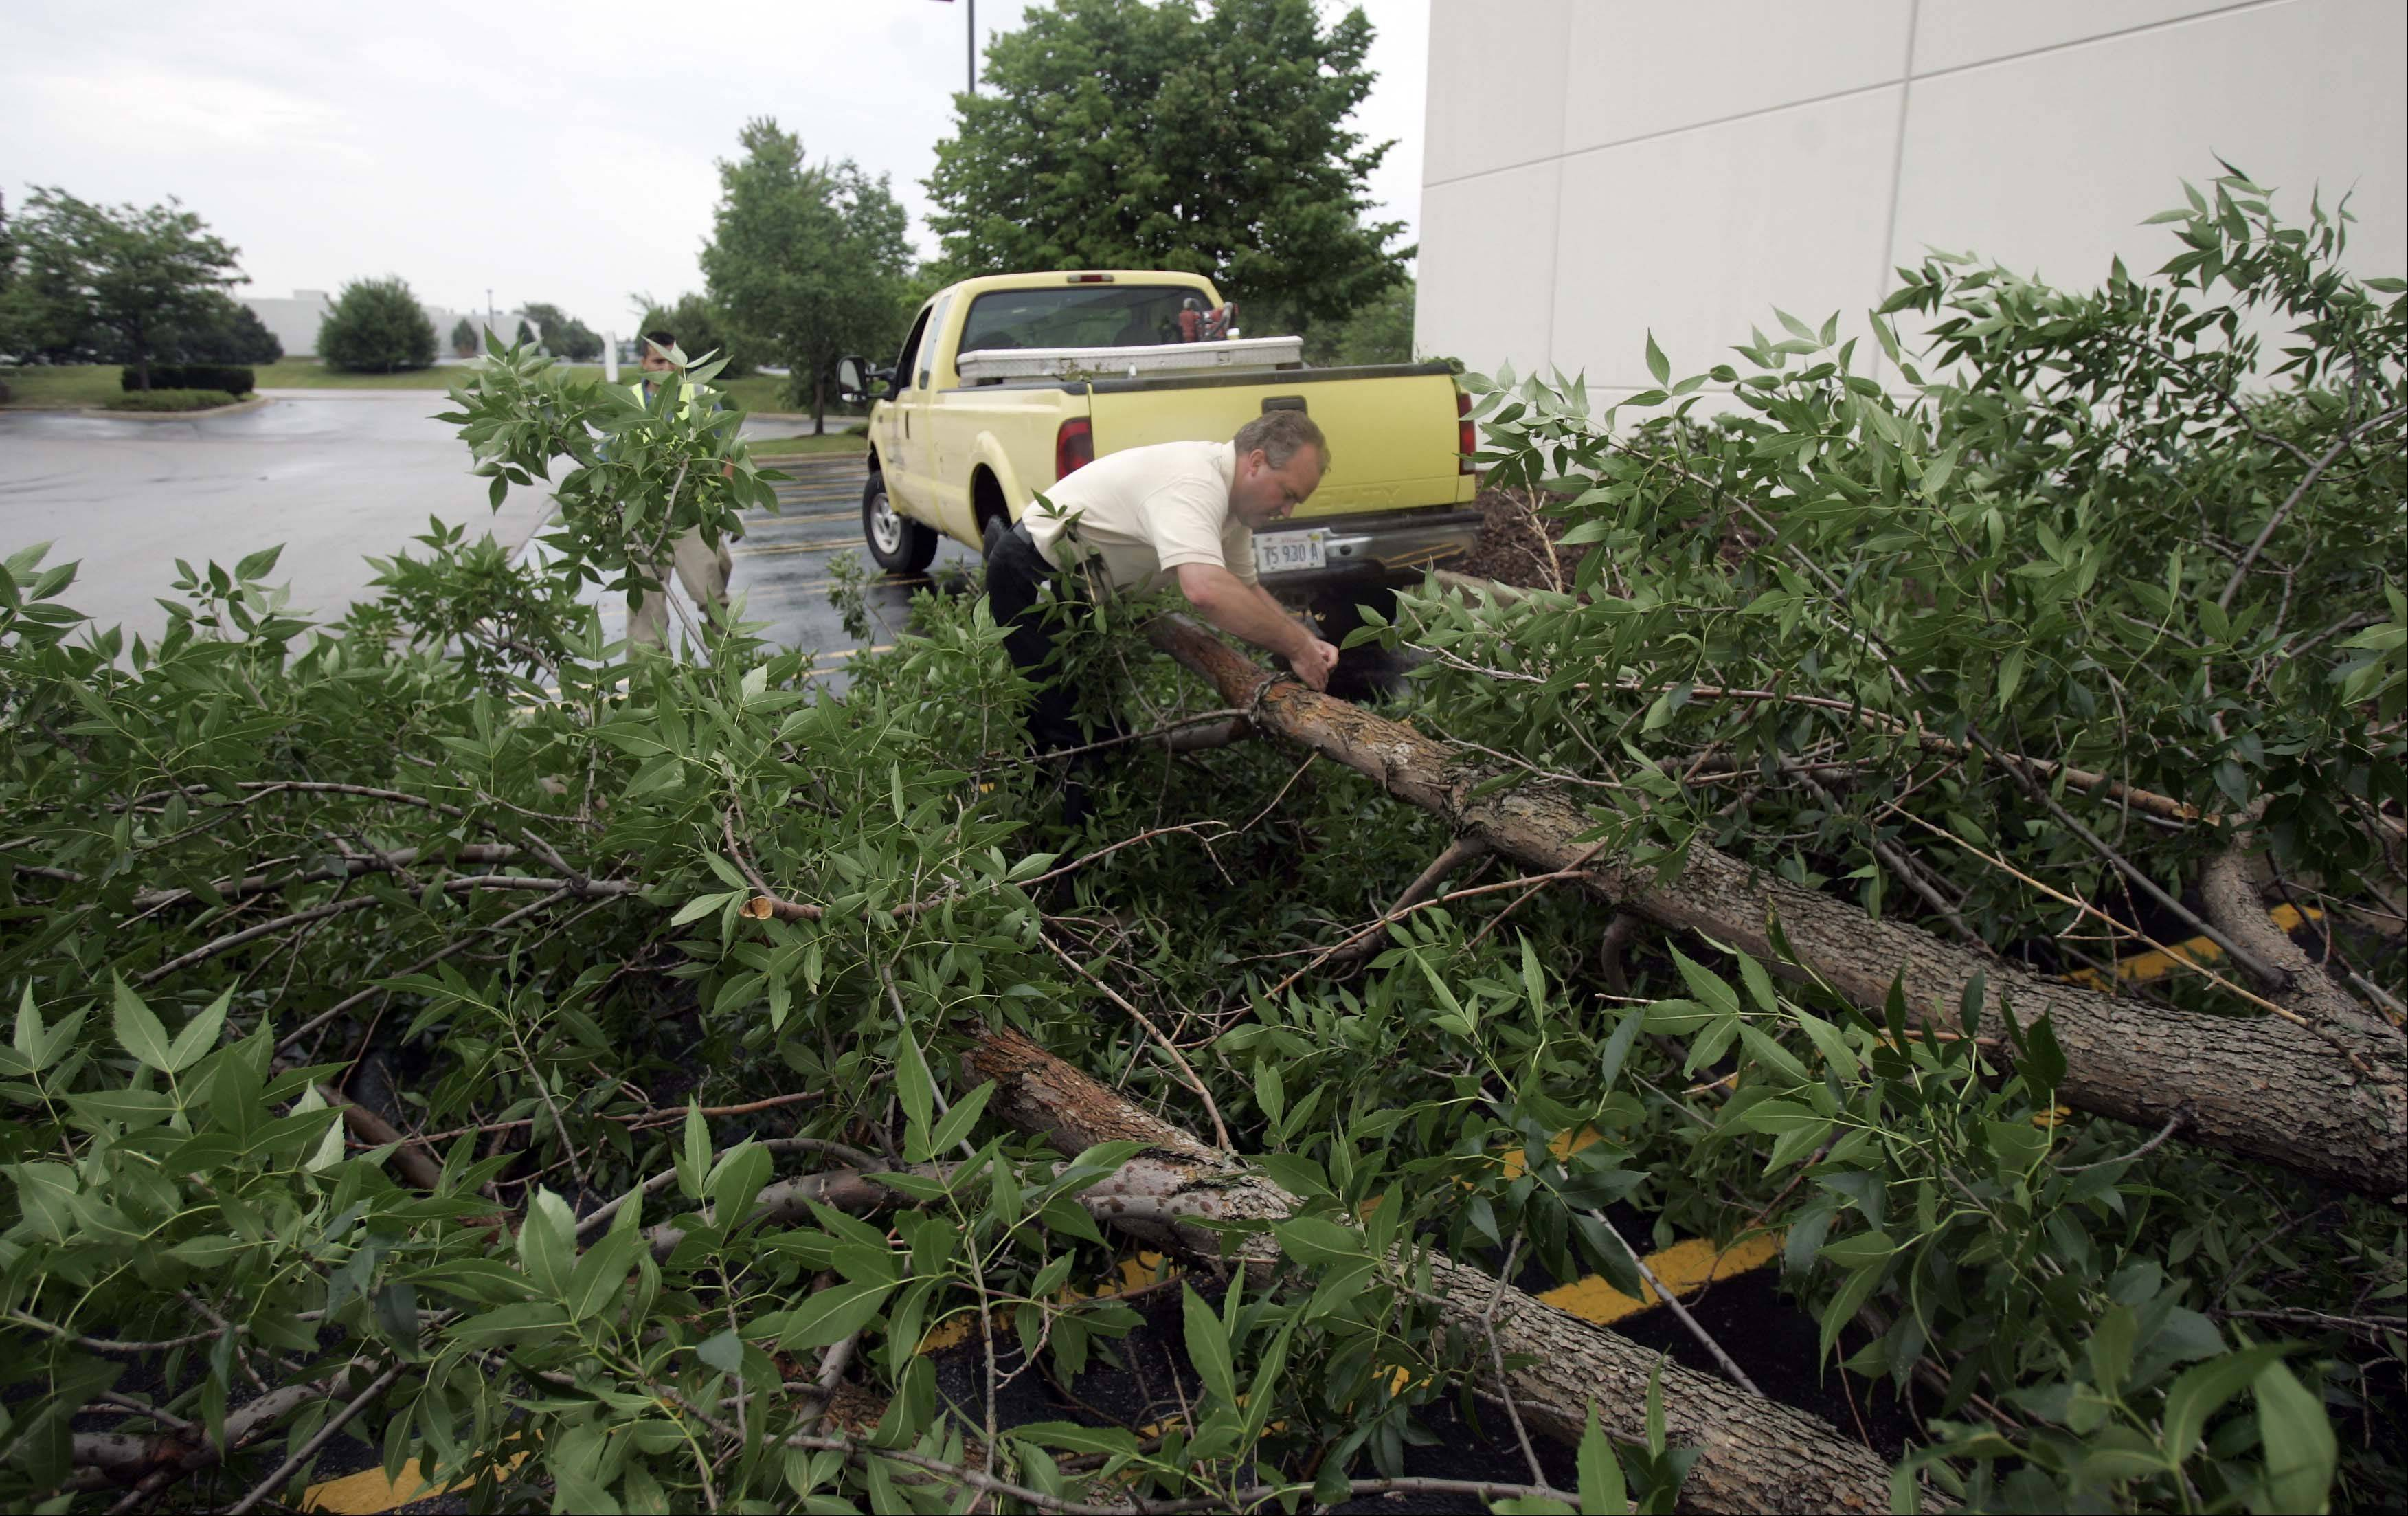 Bob Nelson of Sebert Landscaping Co. unhooks a chain from one of the many downed trees at an industrial park in Carol Stream. The crew was working fast to clear the streets and parking lots of the complex.